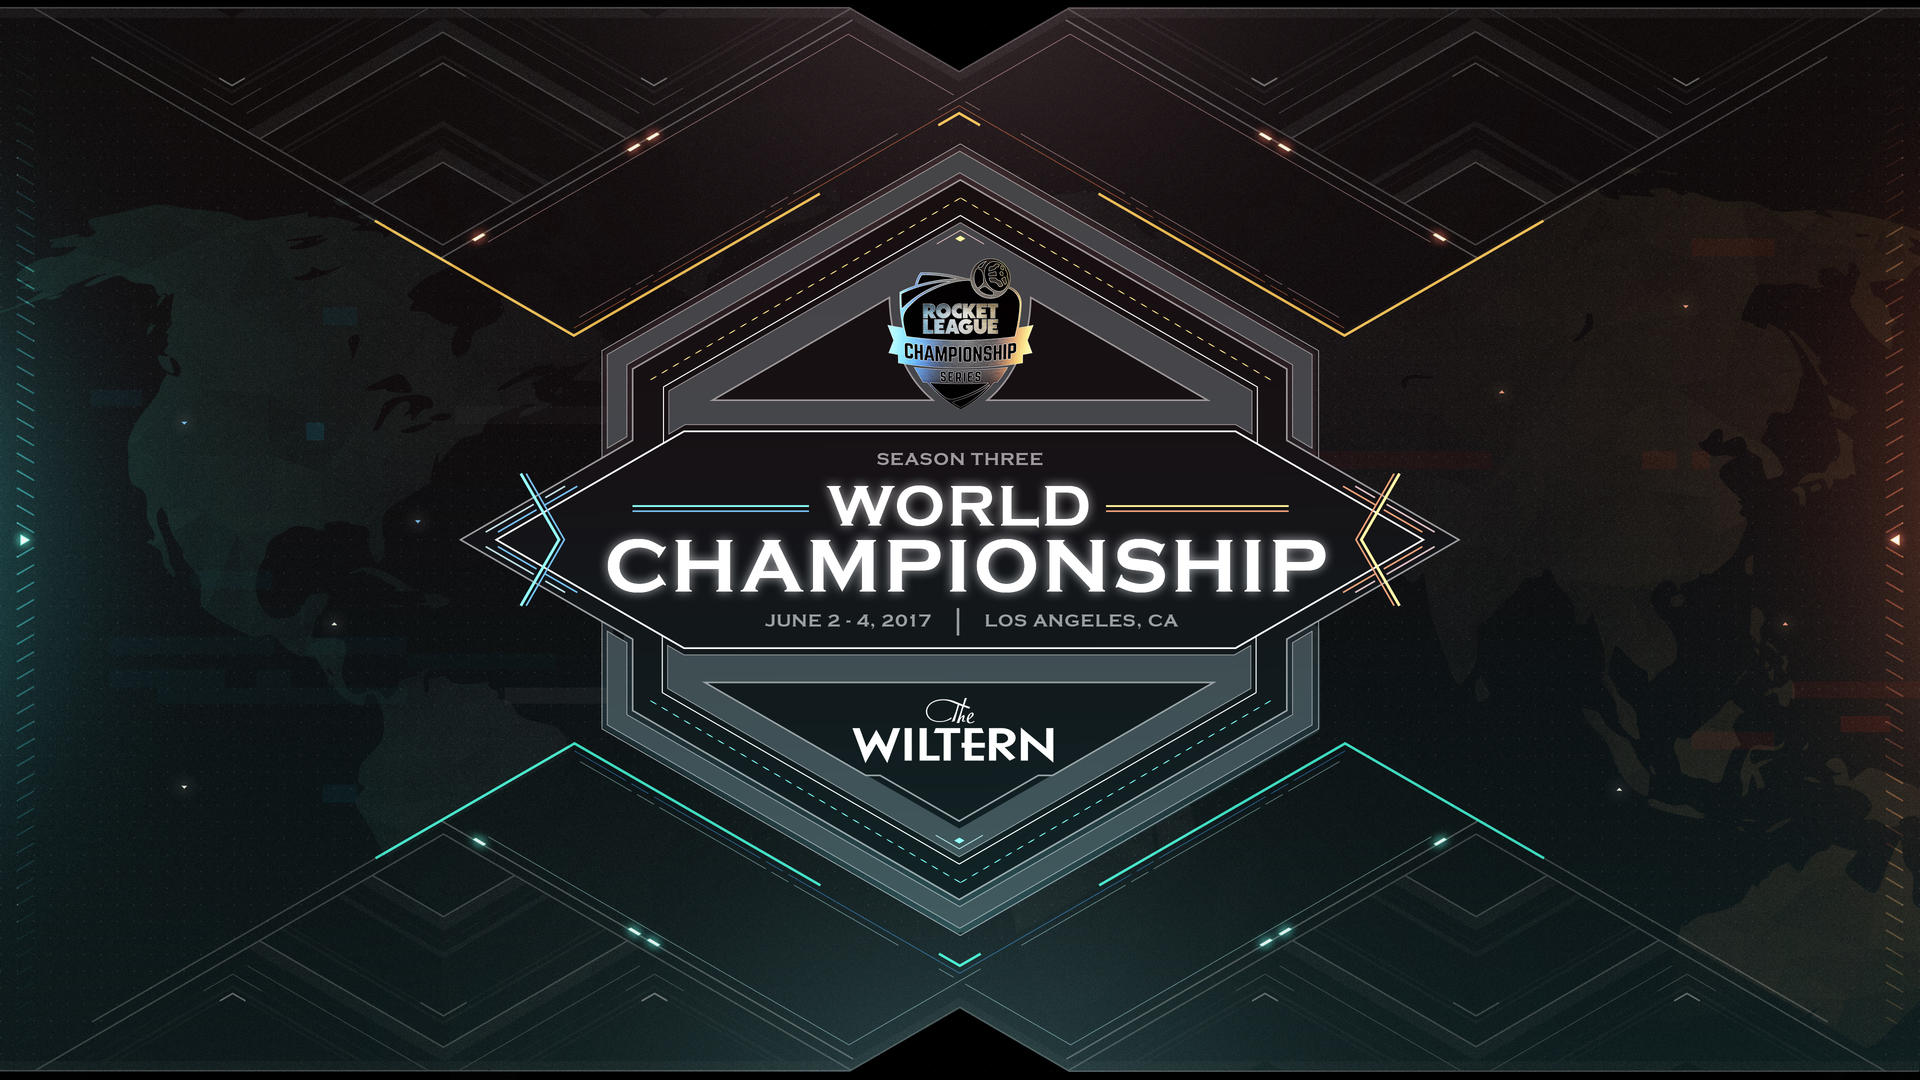 RLCS Season 3 World Championship Tickets on Sale This Wednesday Image